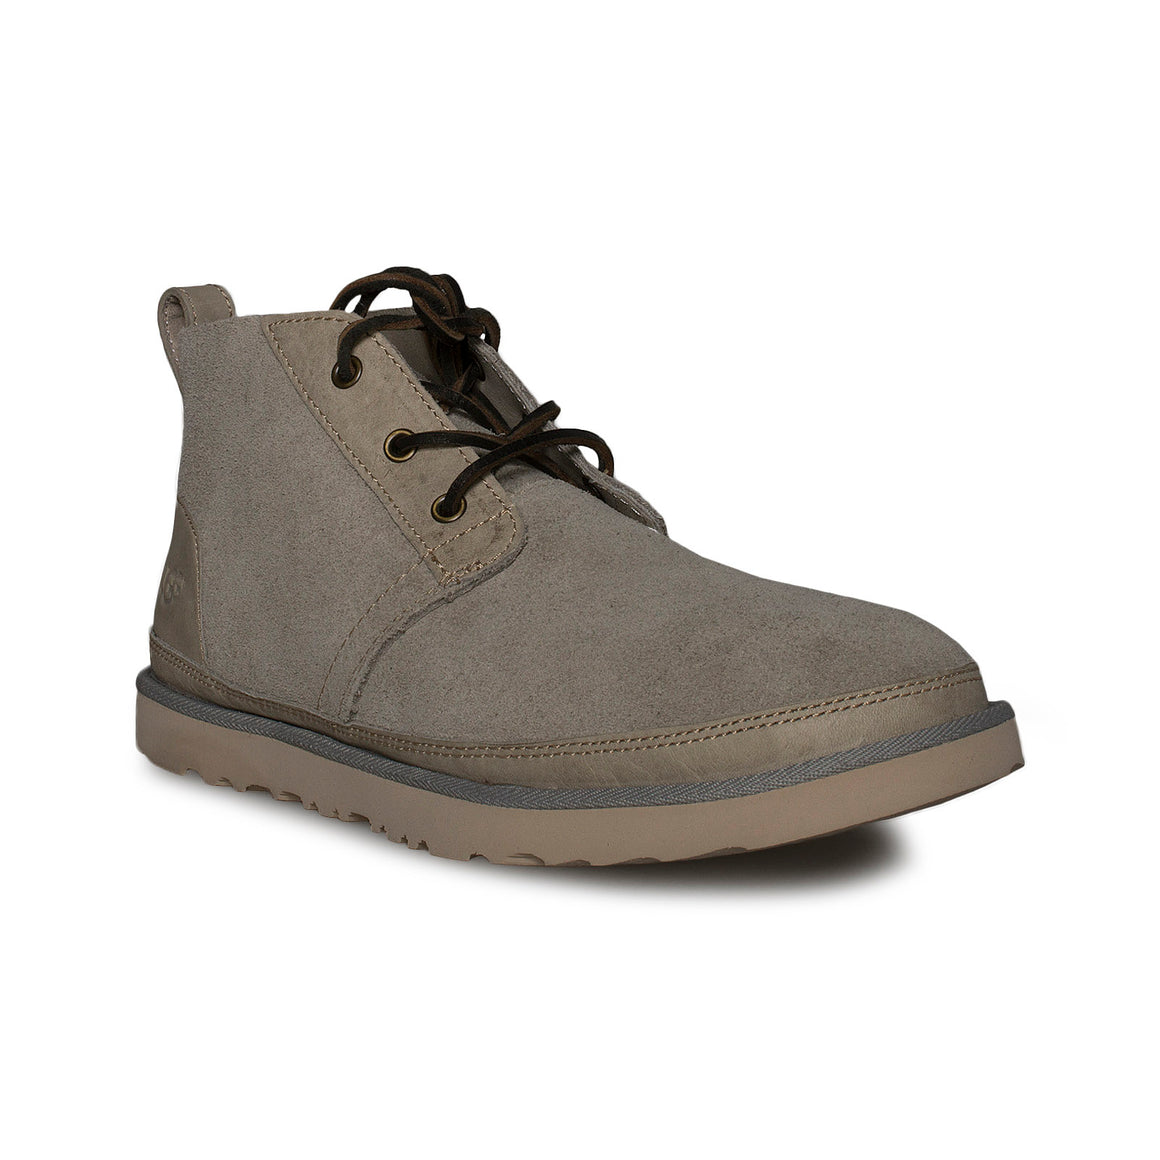 UGG Neumel Unlined Leather Pumice Boots - Men's